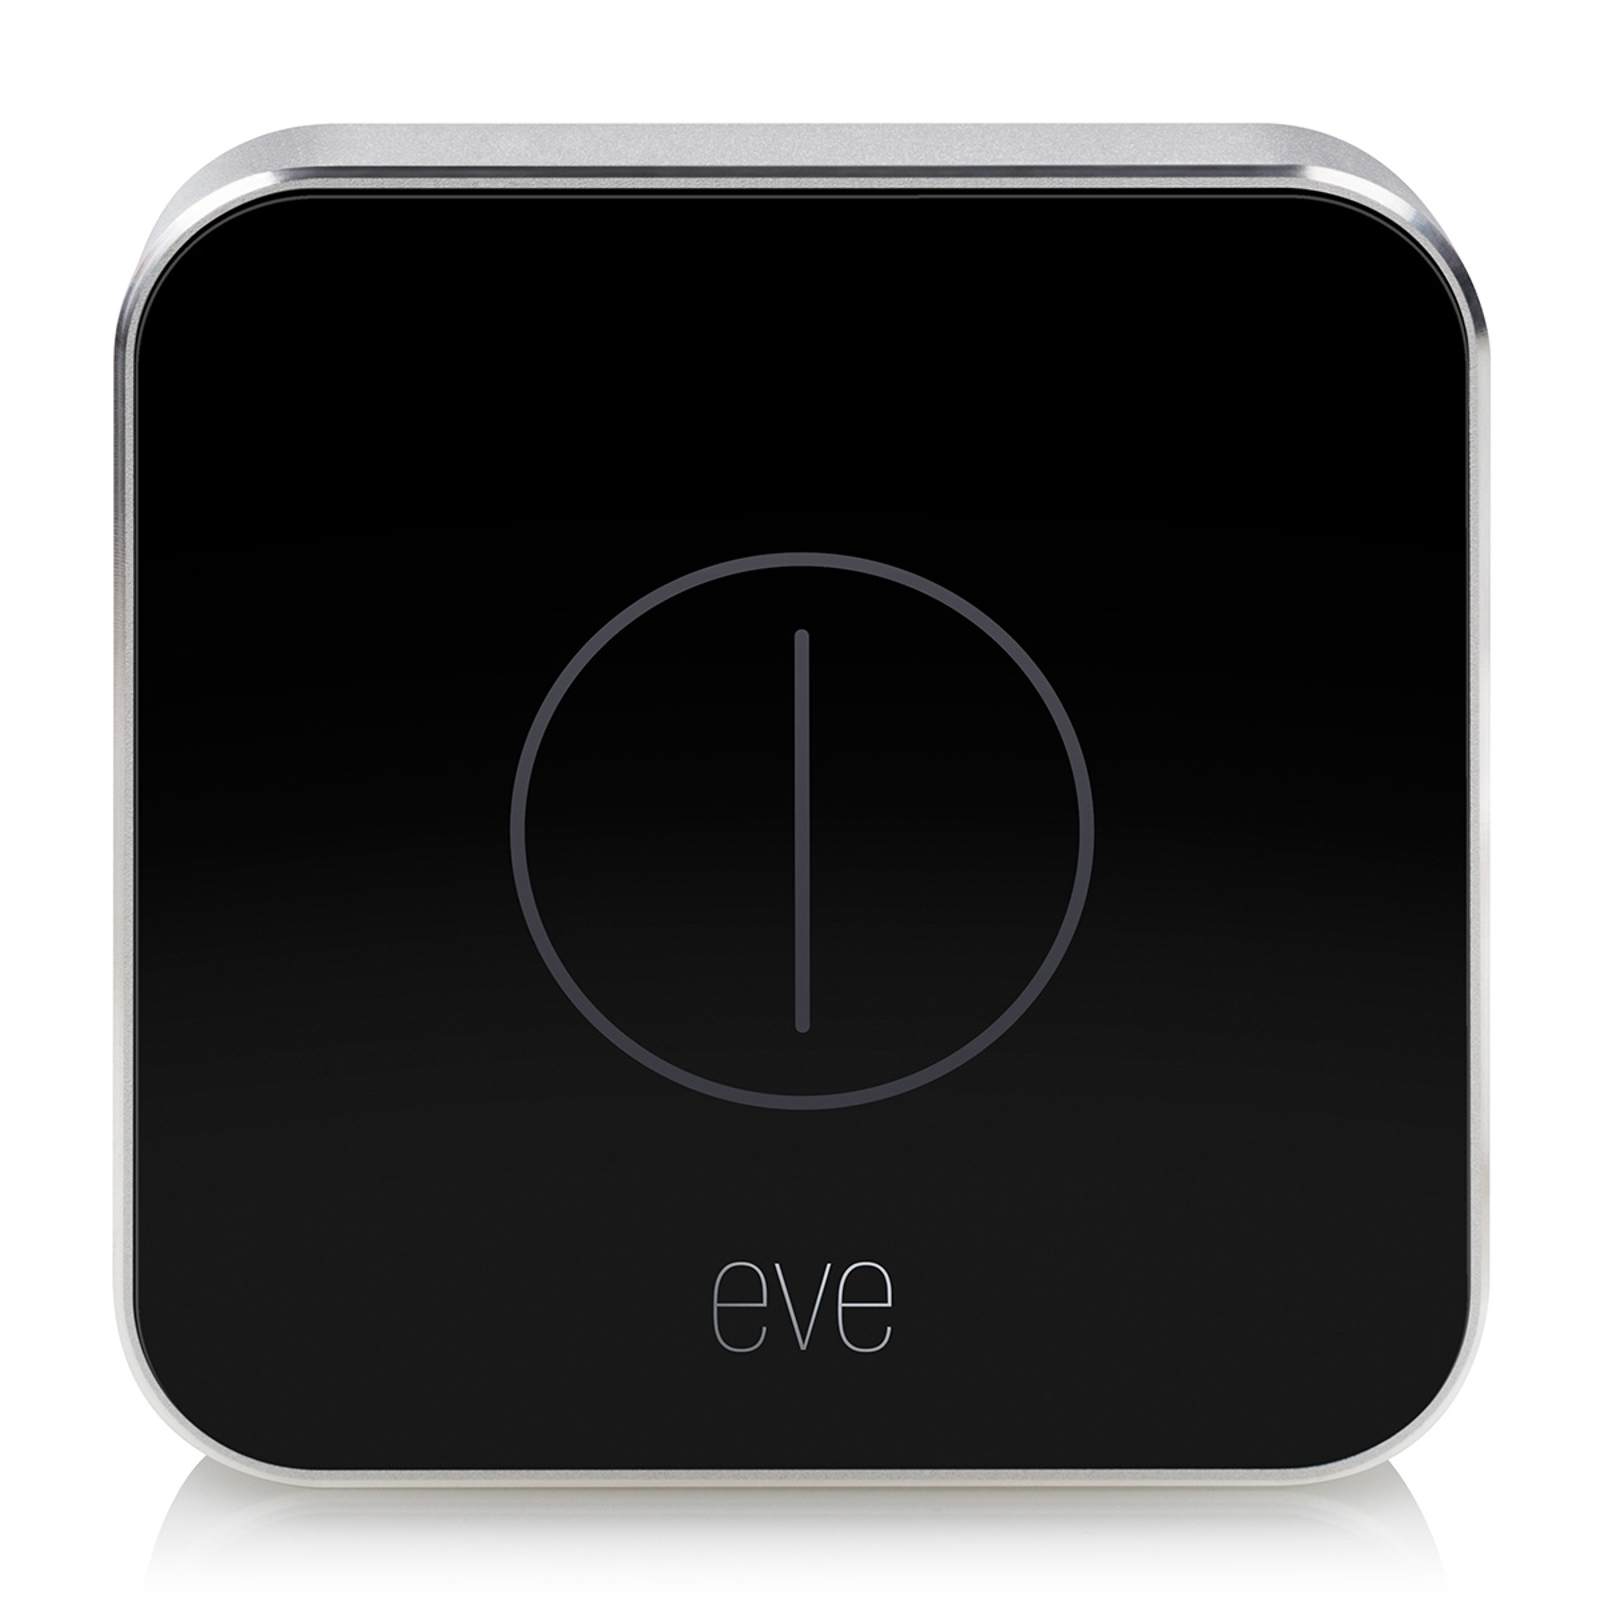 Eve Button Remote Control for Apple HomeKit Device_2029008_1